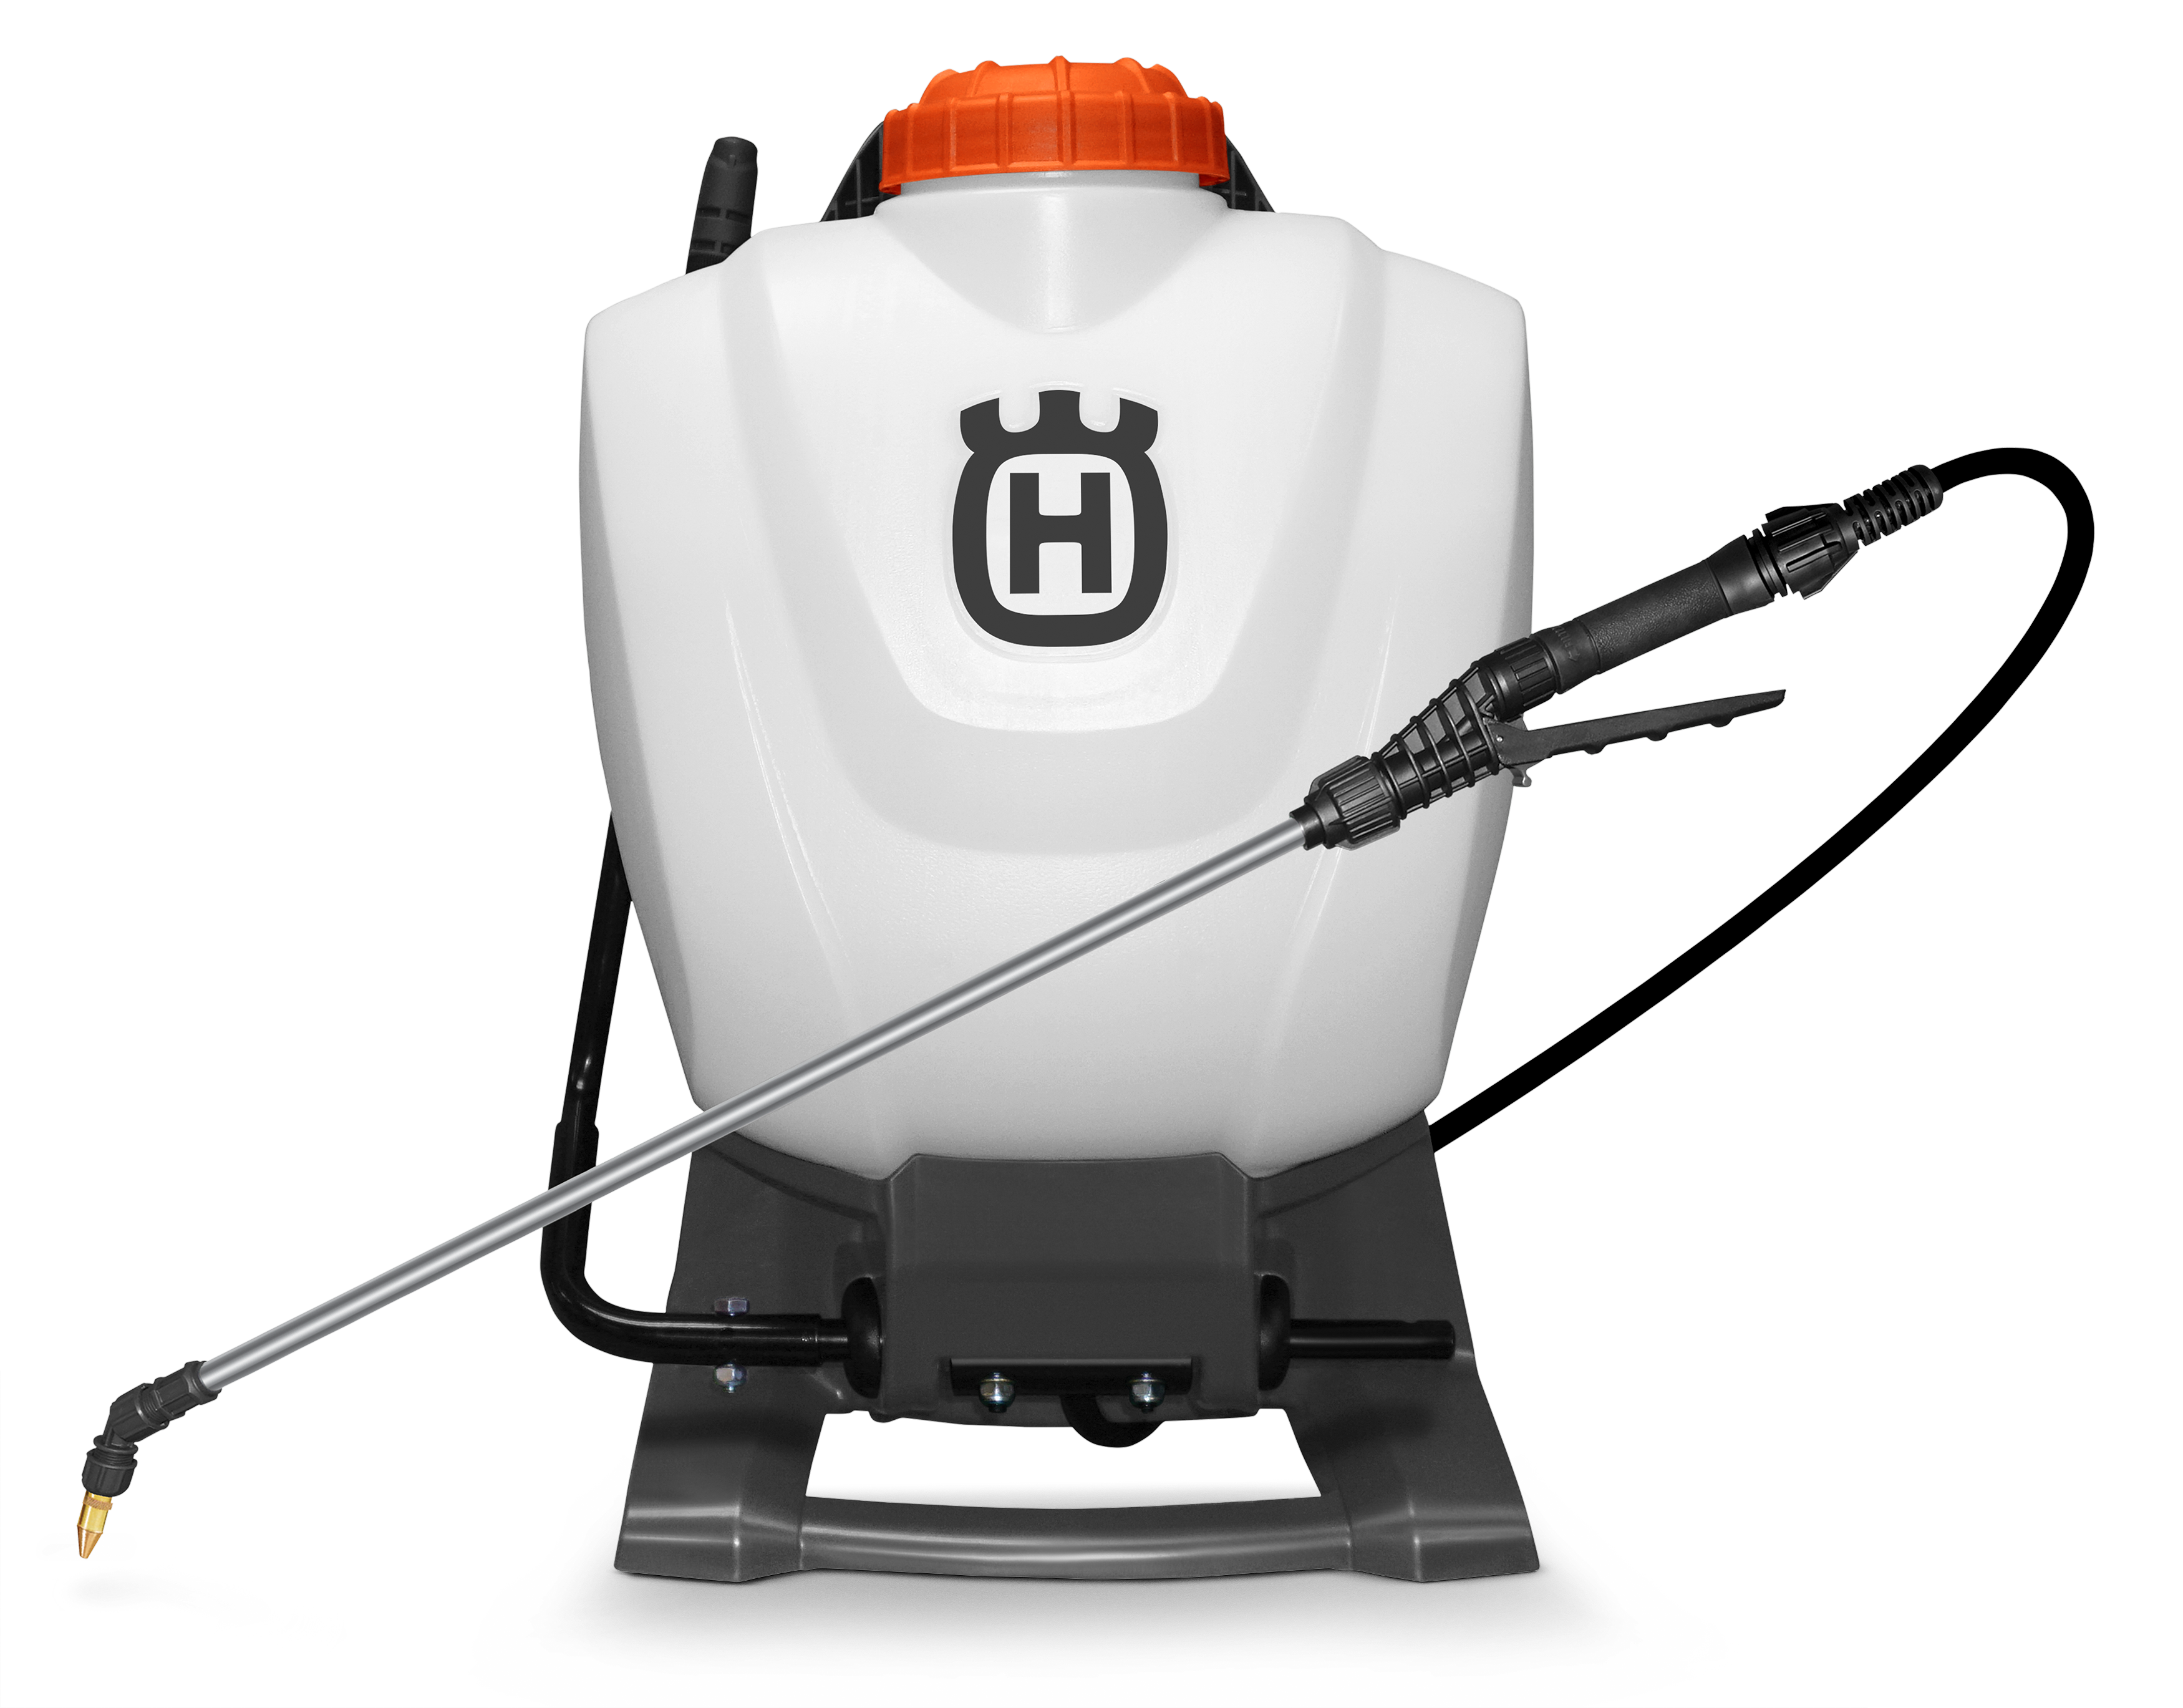 Image for 4 Gallon Backpack Sprayer                                                                                                        from HusqvarnaB2C